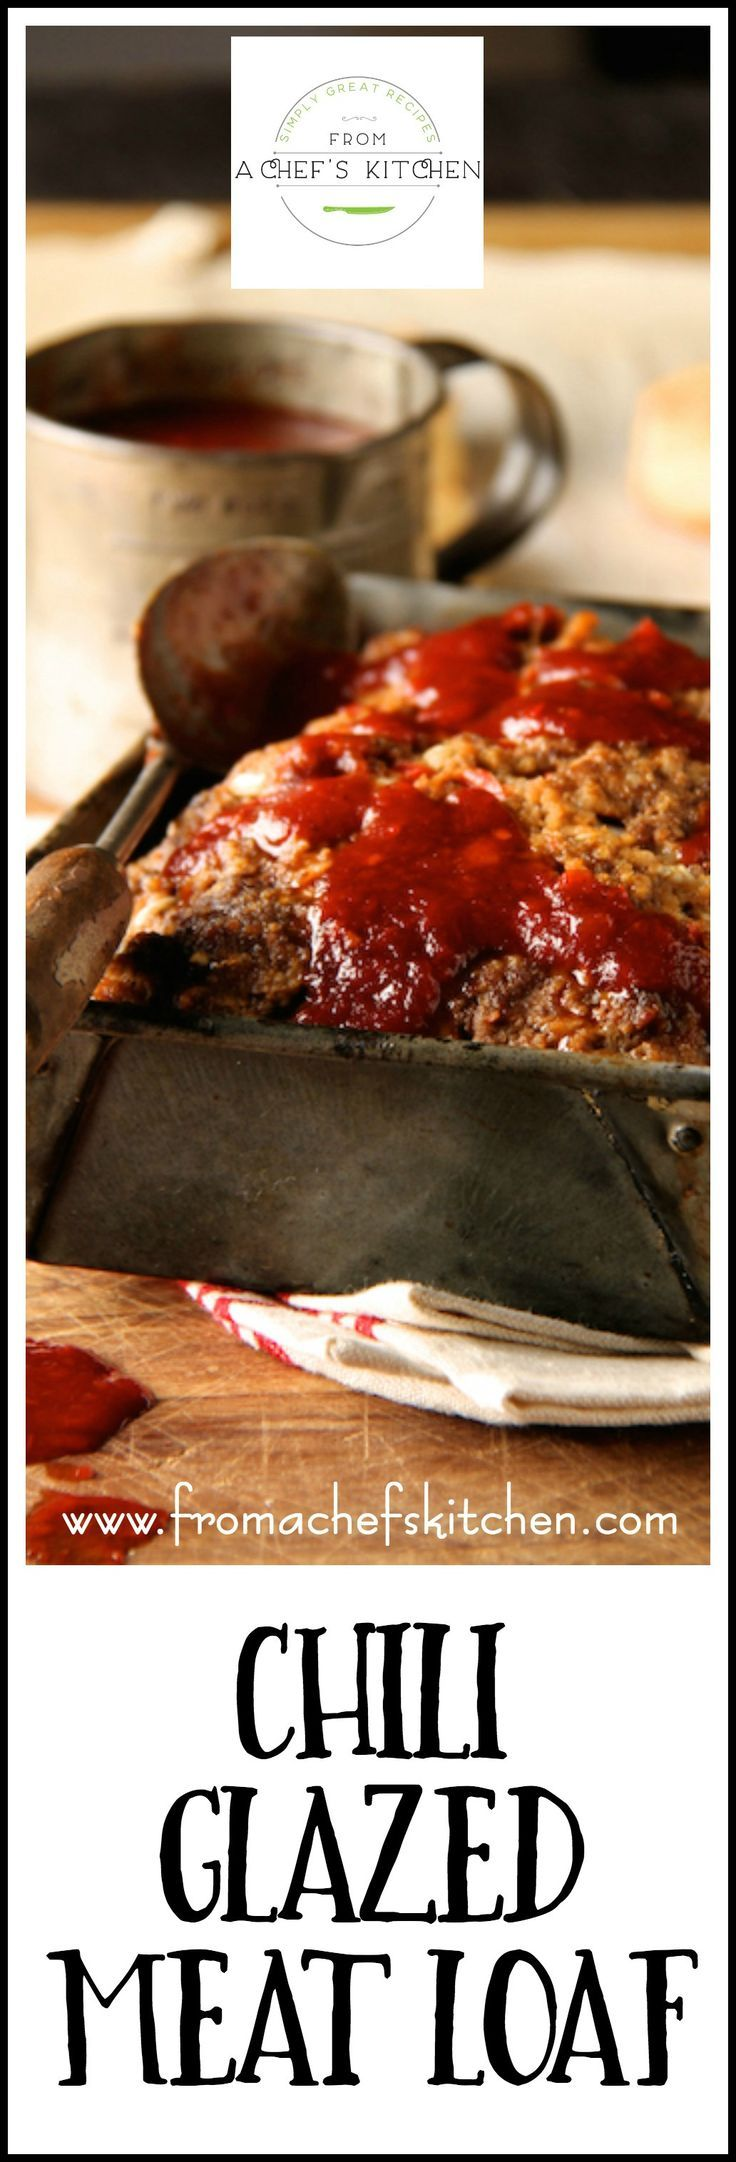 Chili Glazed Meat Loaf is simple, old-fashioned comfort food! Bottled chili sauce makes an easy glaze for this American classic!